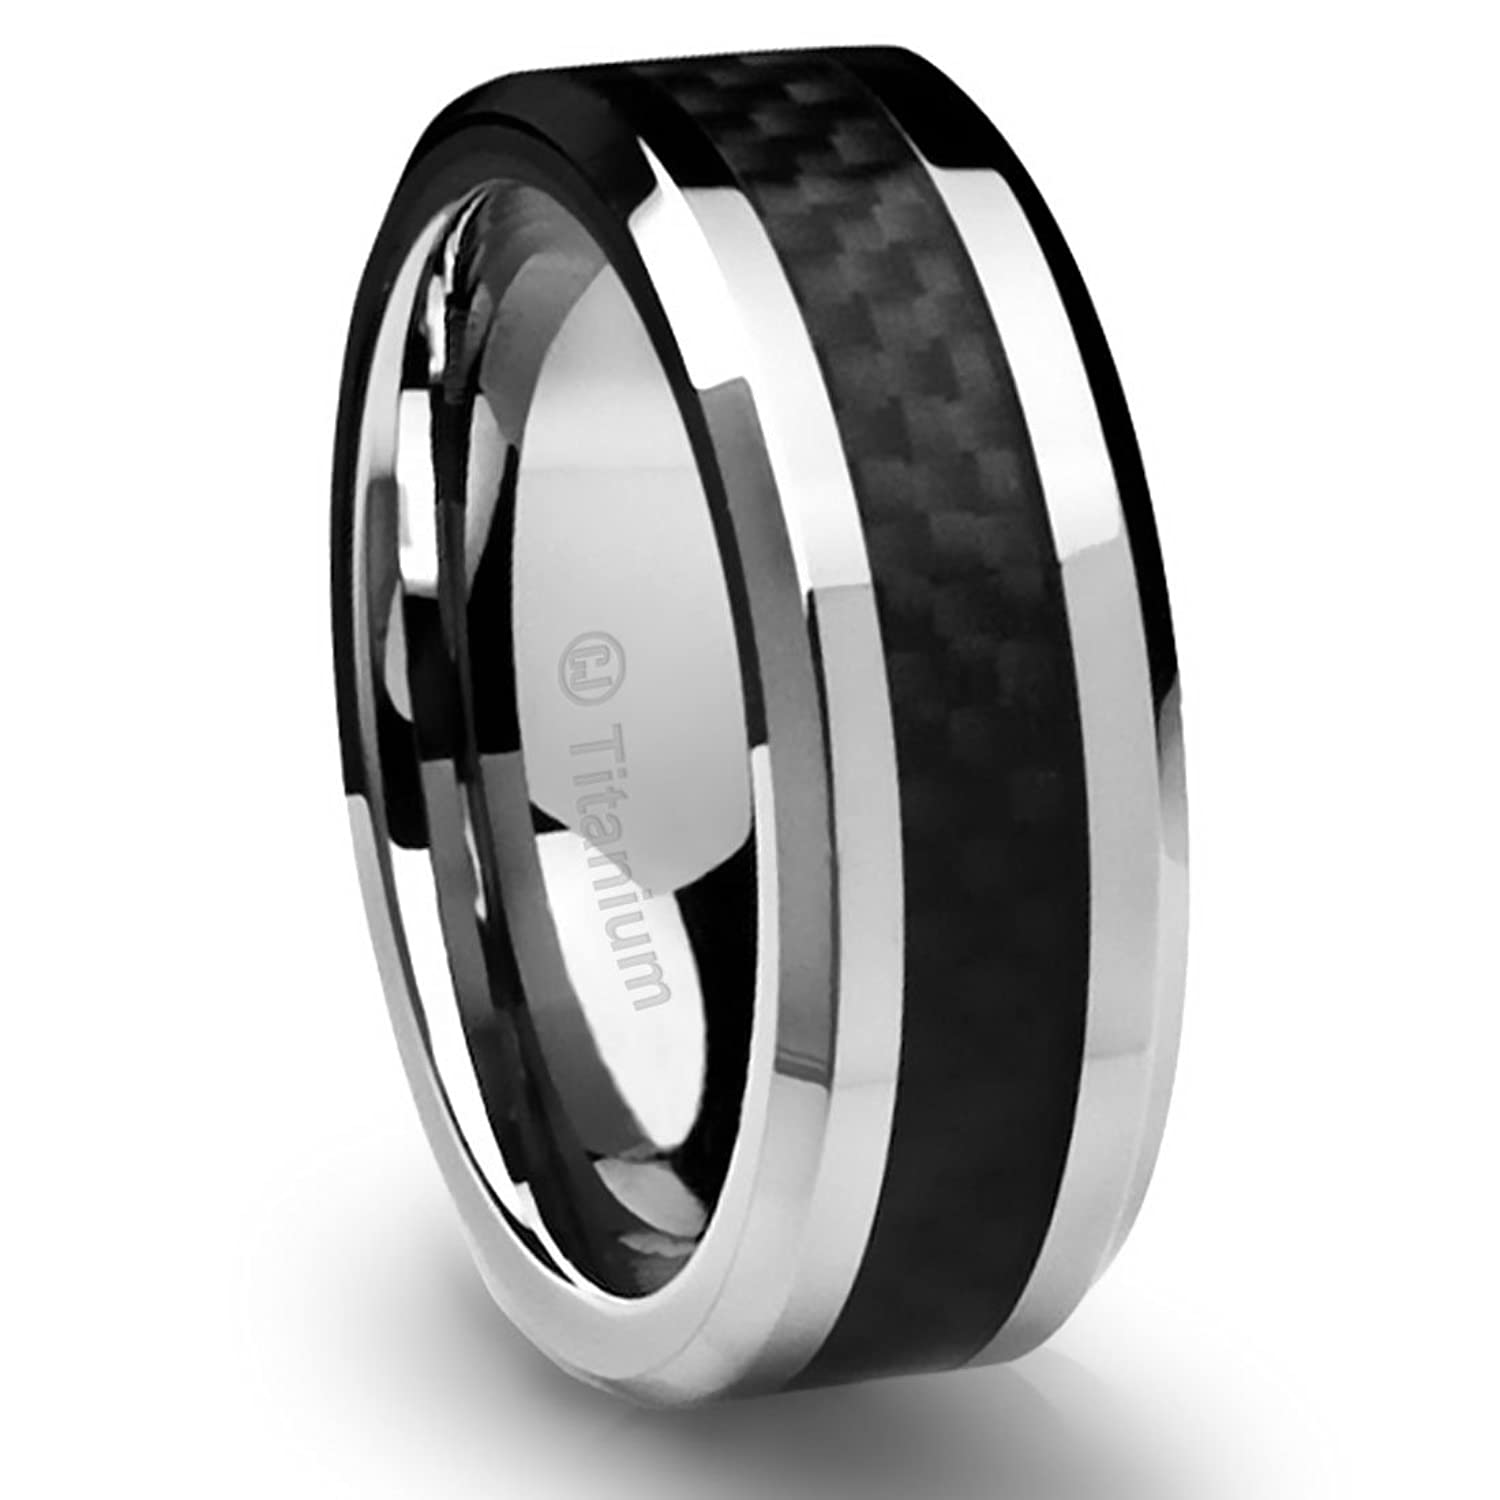 8MM Menu0027s Titanium Ring Wedding Band Black Carbon Fiber Inlay And Beveled  Edges | Amazon.com Great Ideas